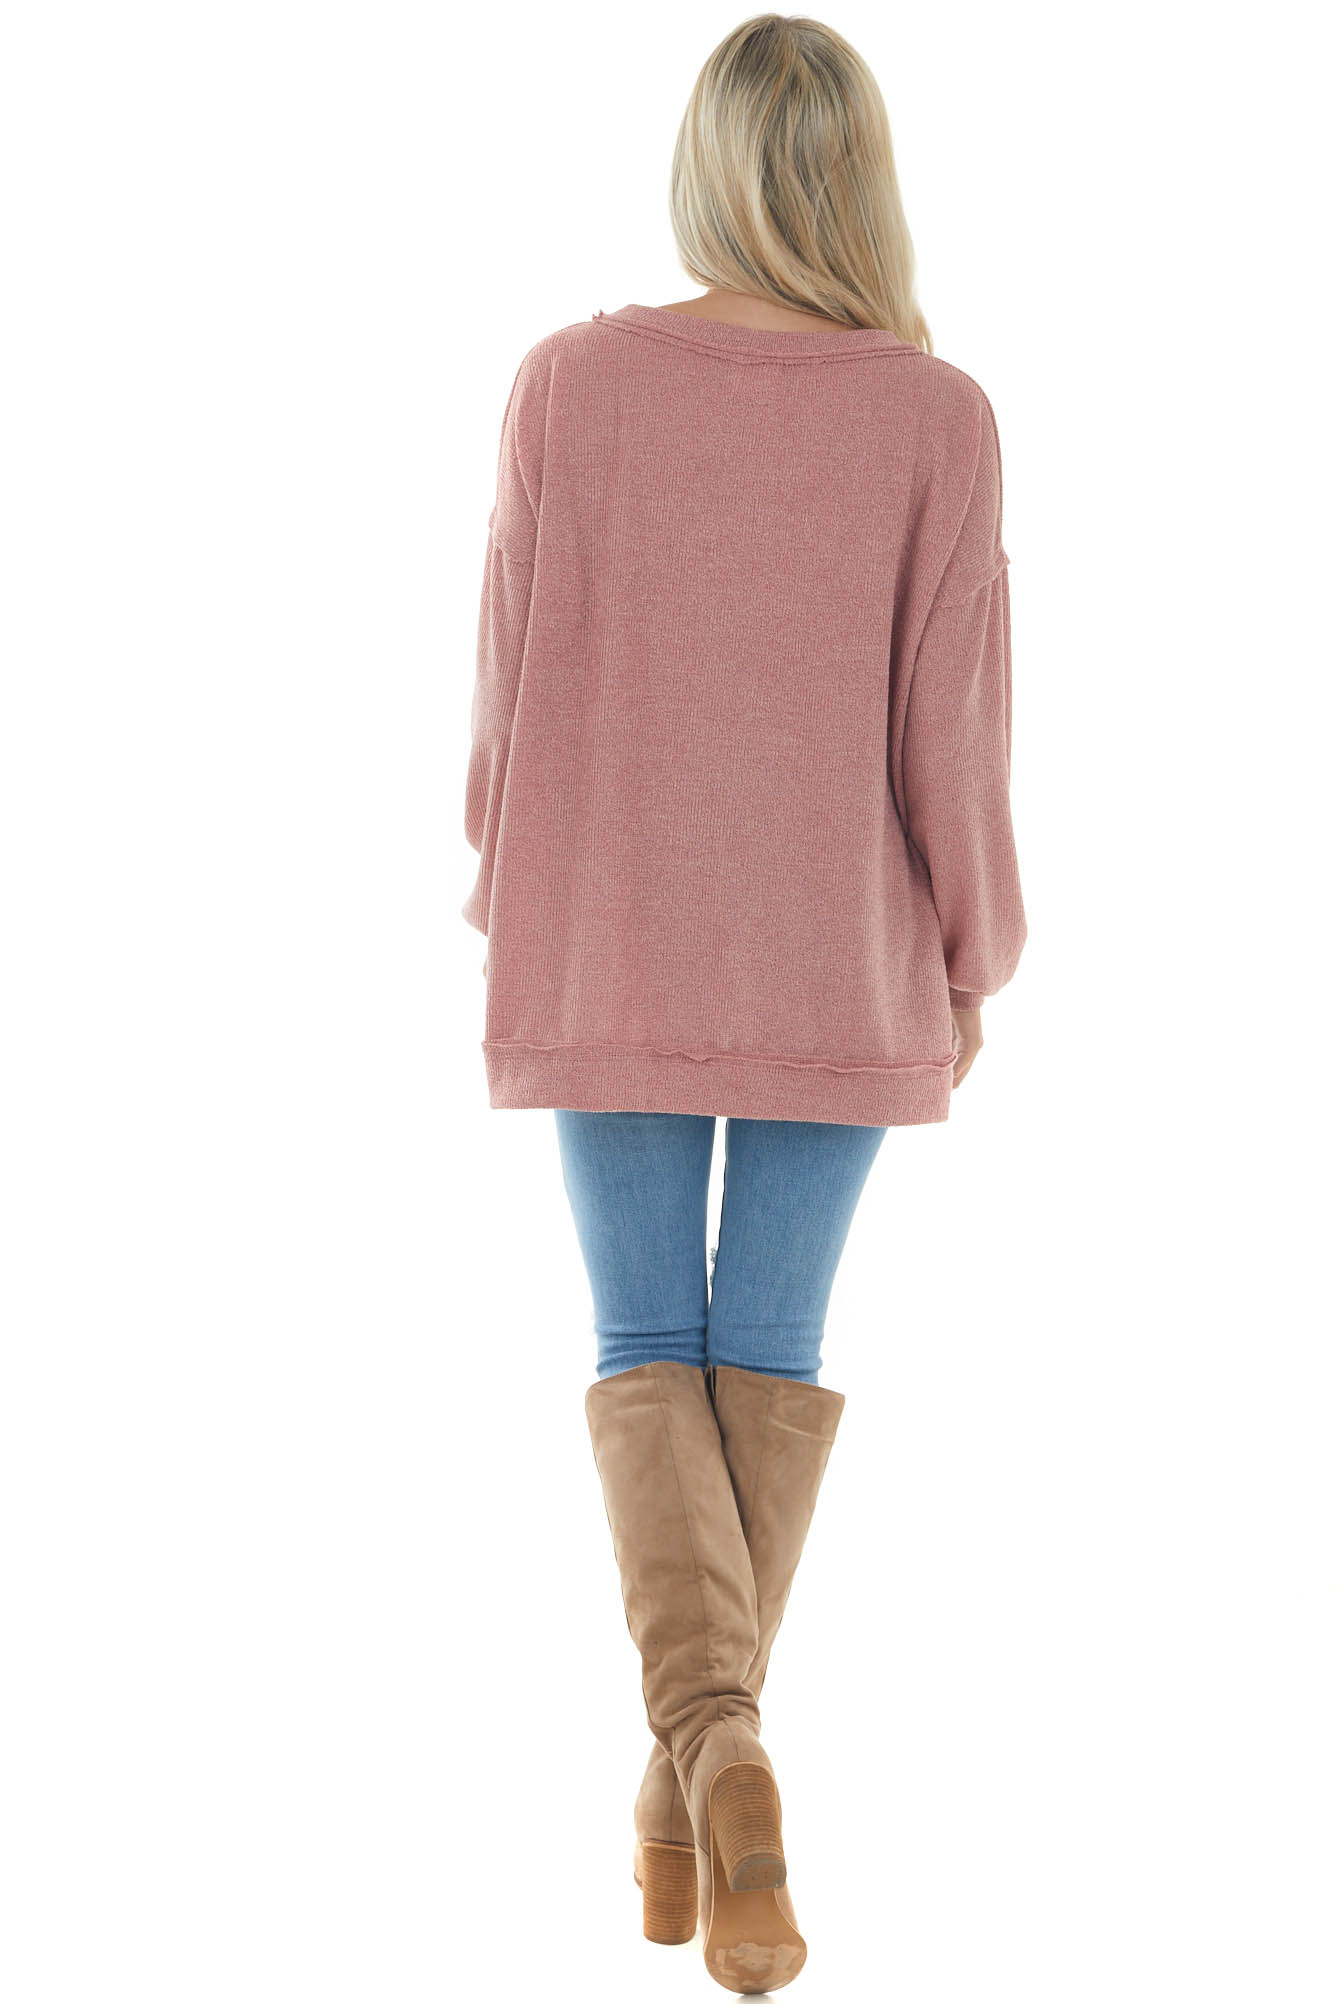 Hazy Rose Raw Edge Loose Knit Pullover Top